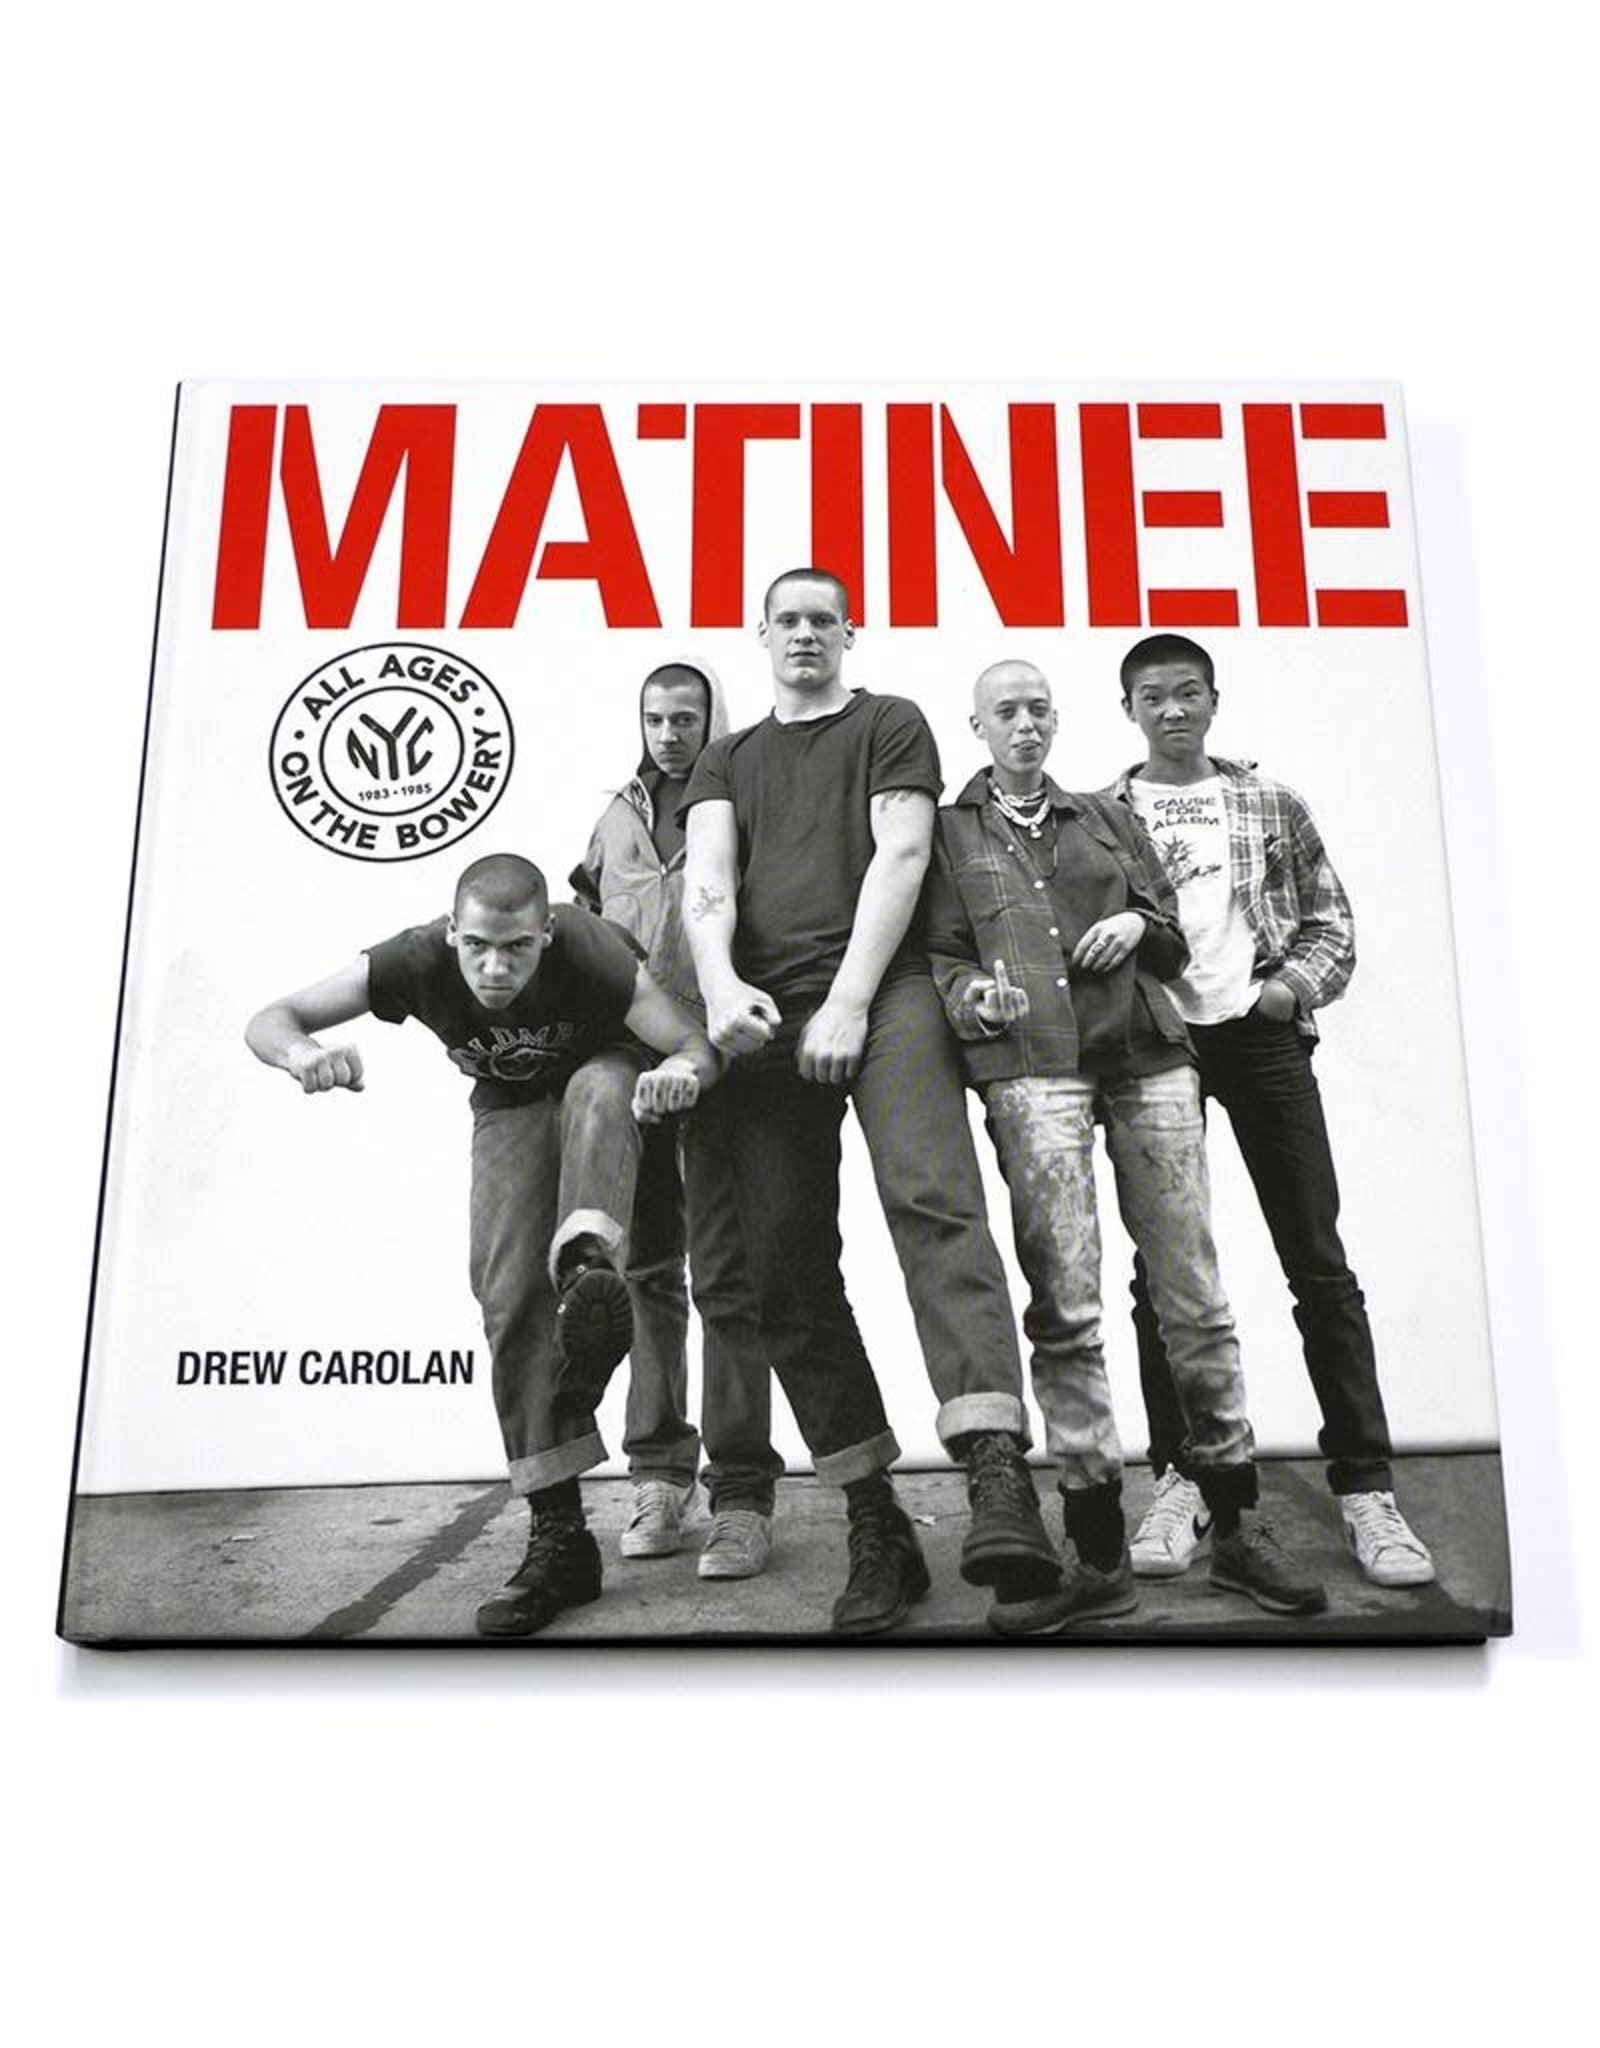 Drew Carolan: Matinee - All Ages on the Bowery 1983–1985